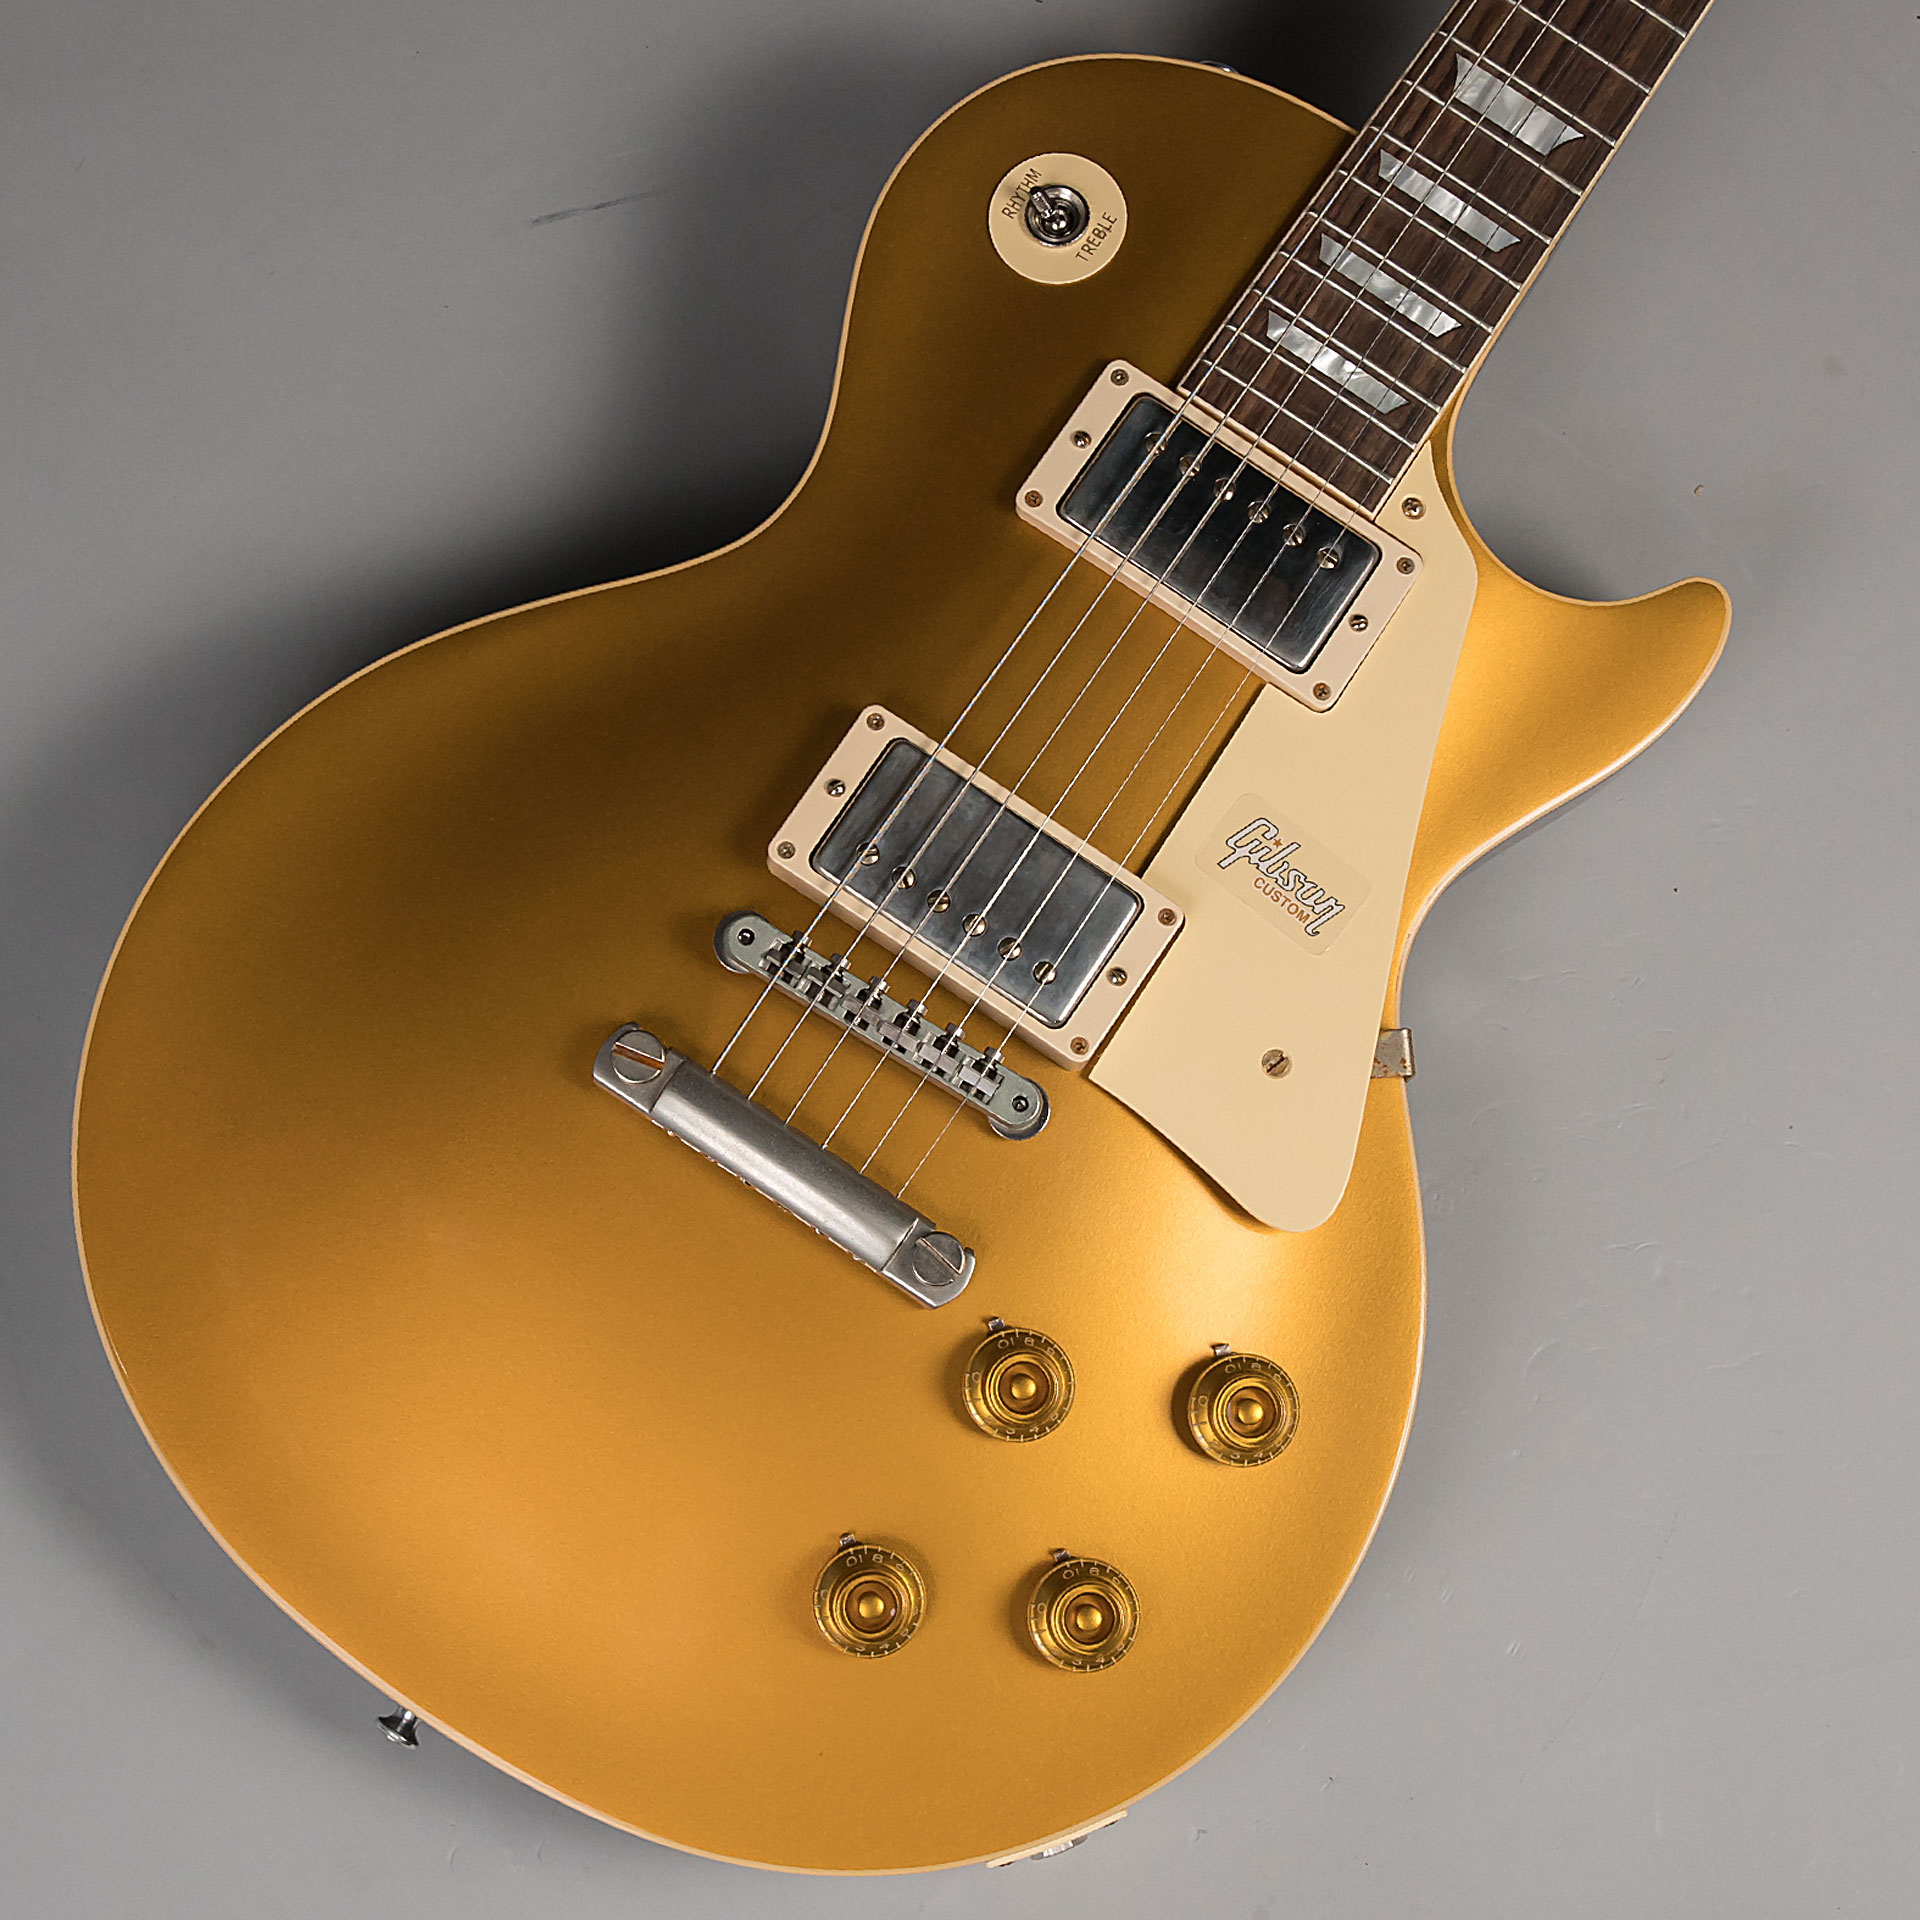 57 Les Paul Gold Top DB VOSのボディトップ-アップ画像